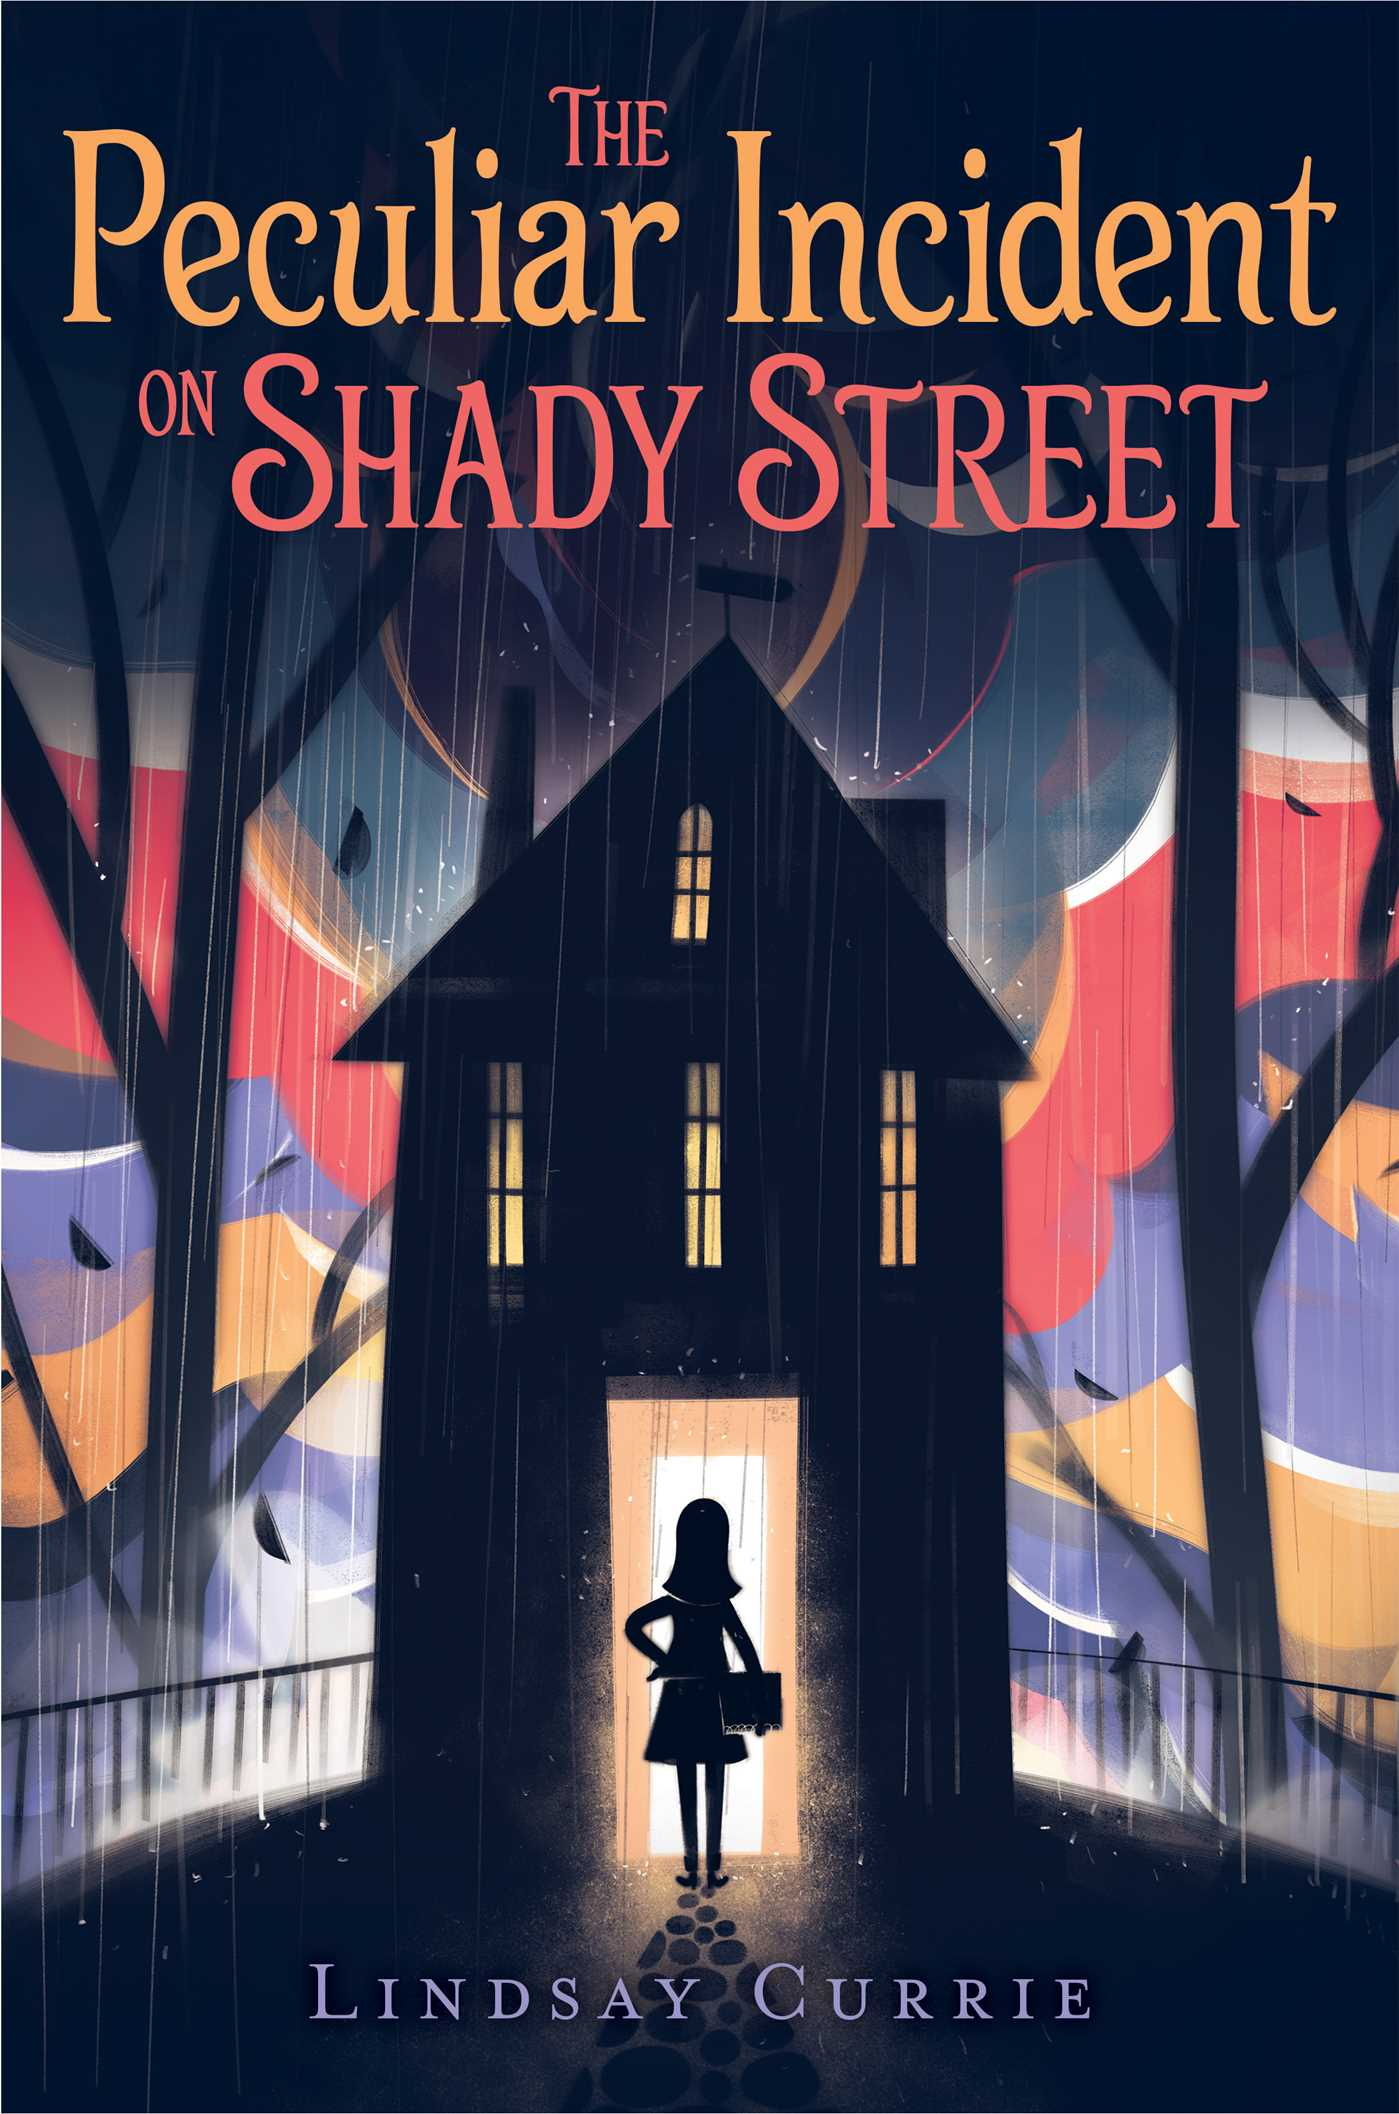 Image result for the peculiar incident on shady street book cover